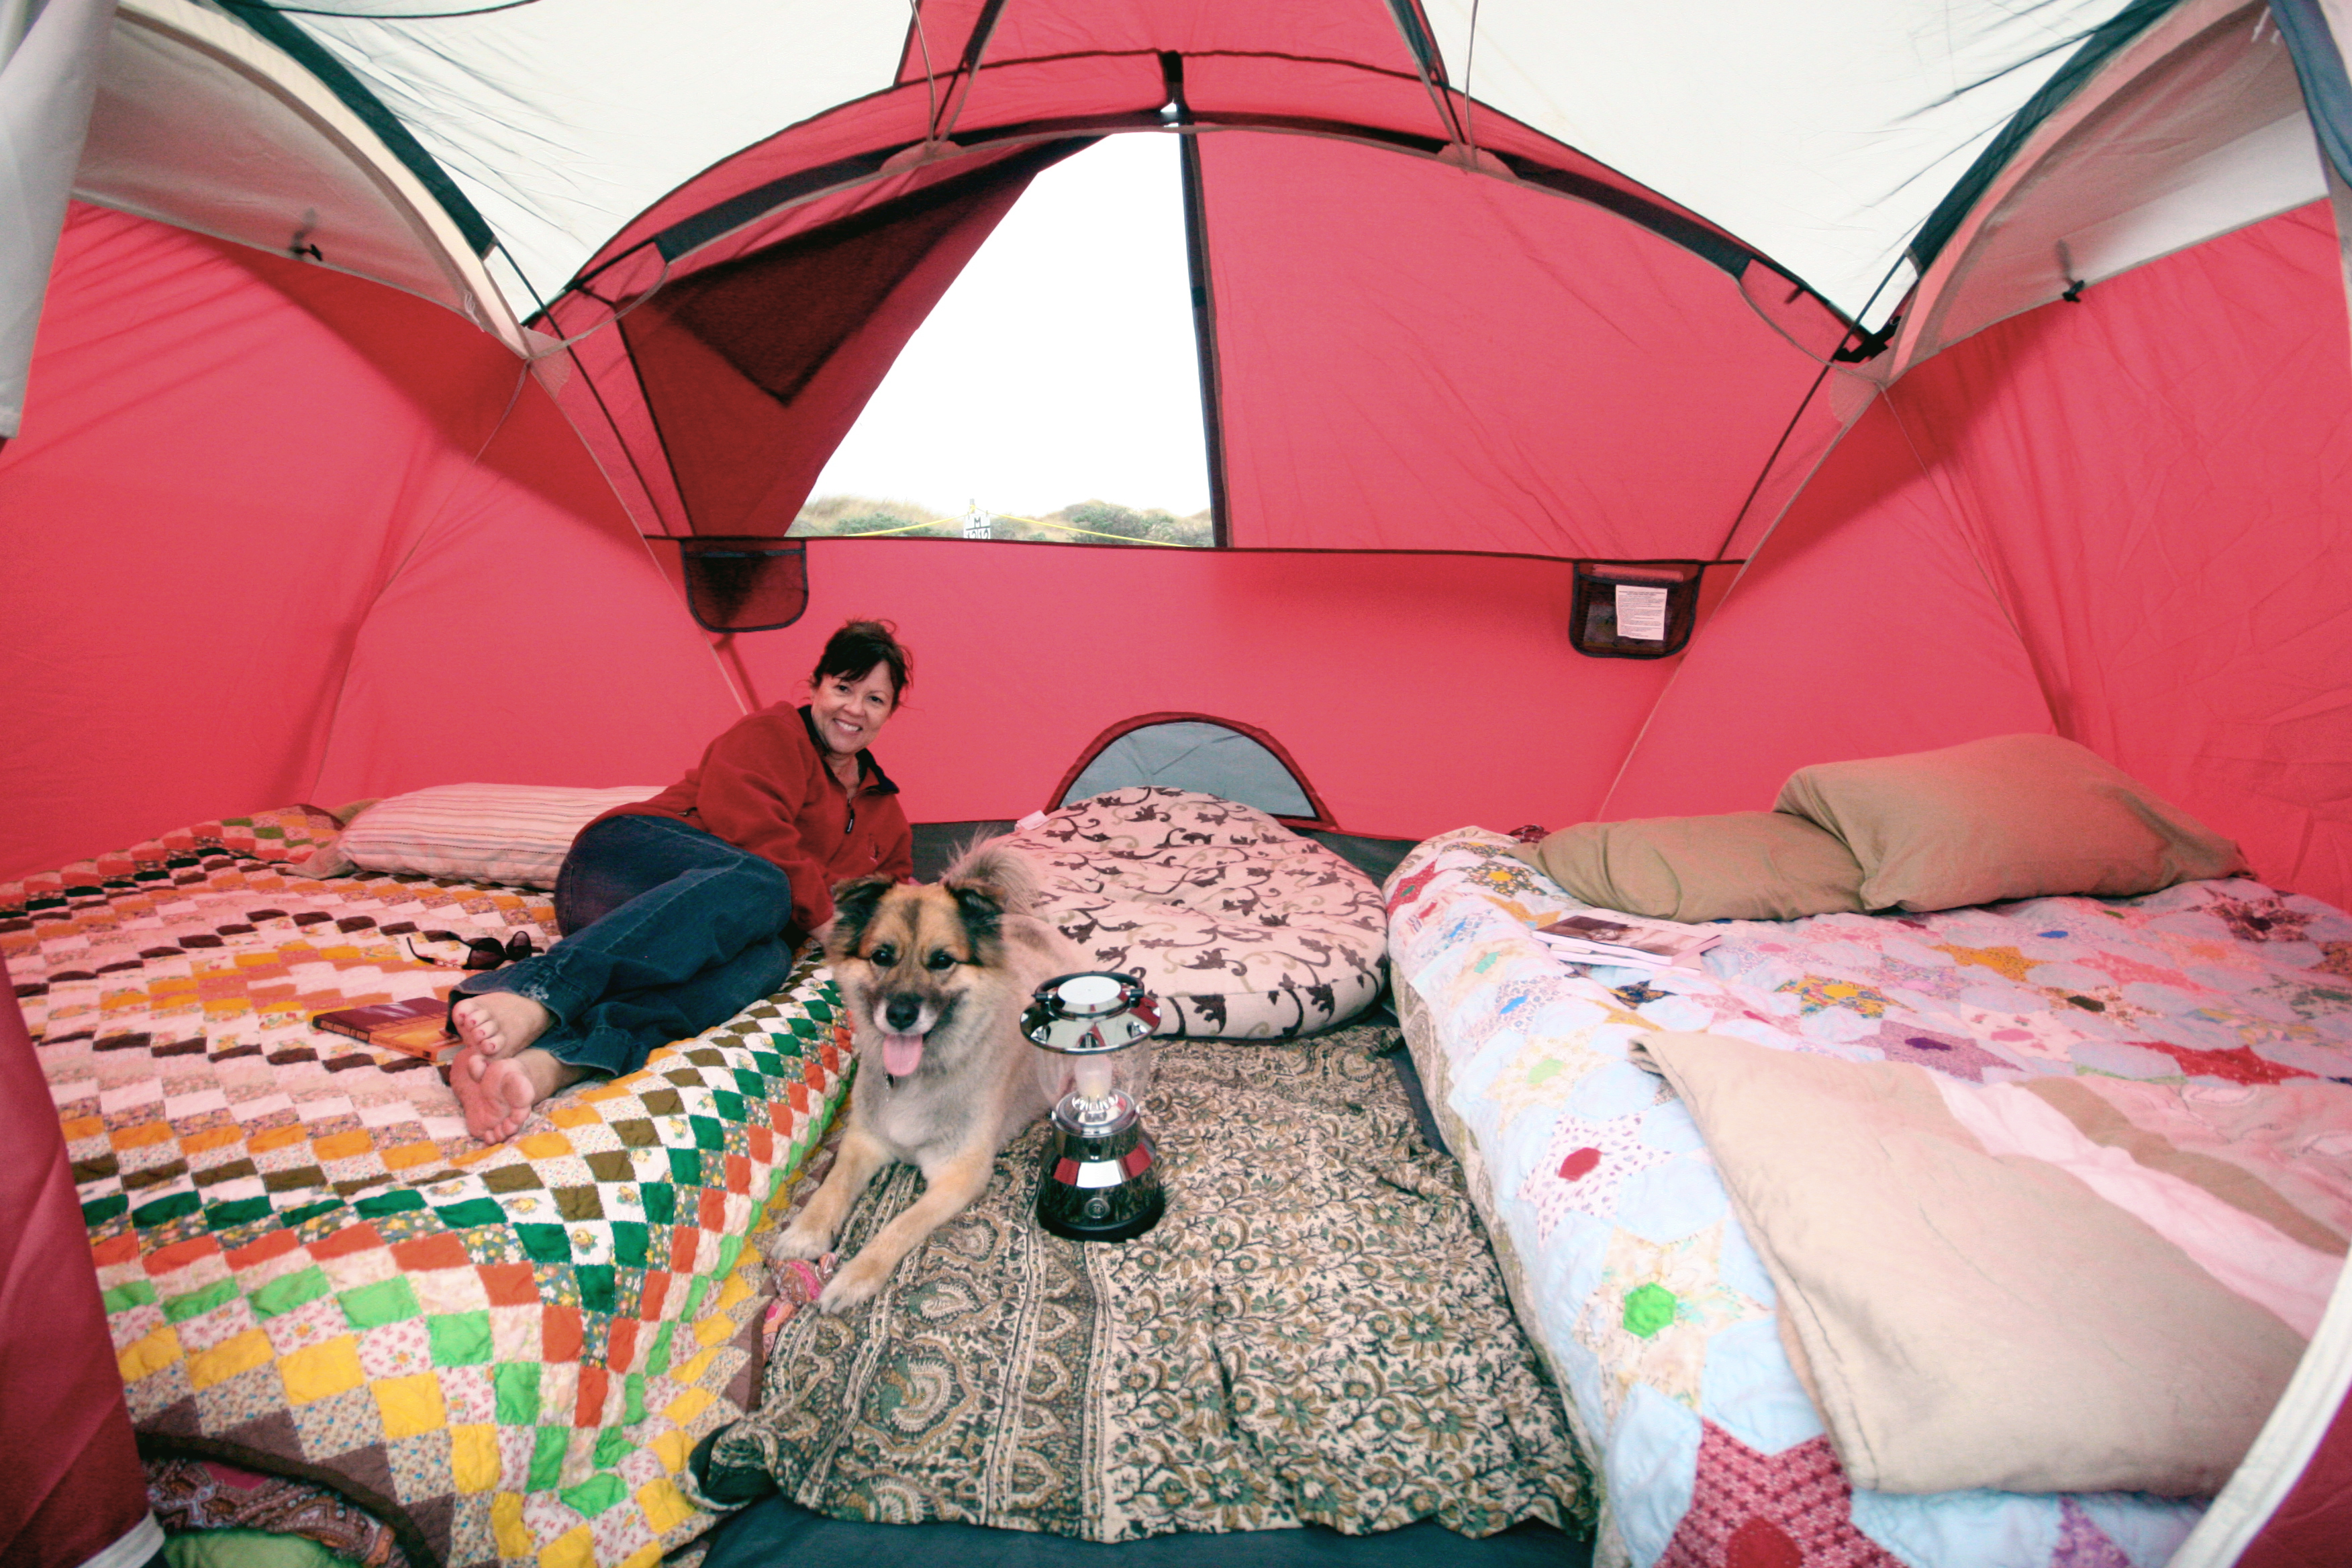 Our cozy little u2014 big u2014 tent Image Image Image & Girls just wanna beach camp |